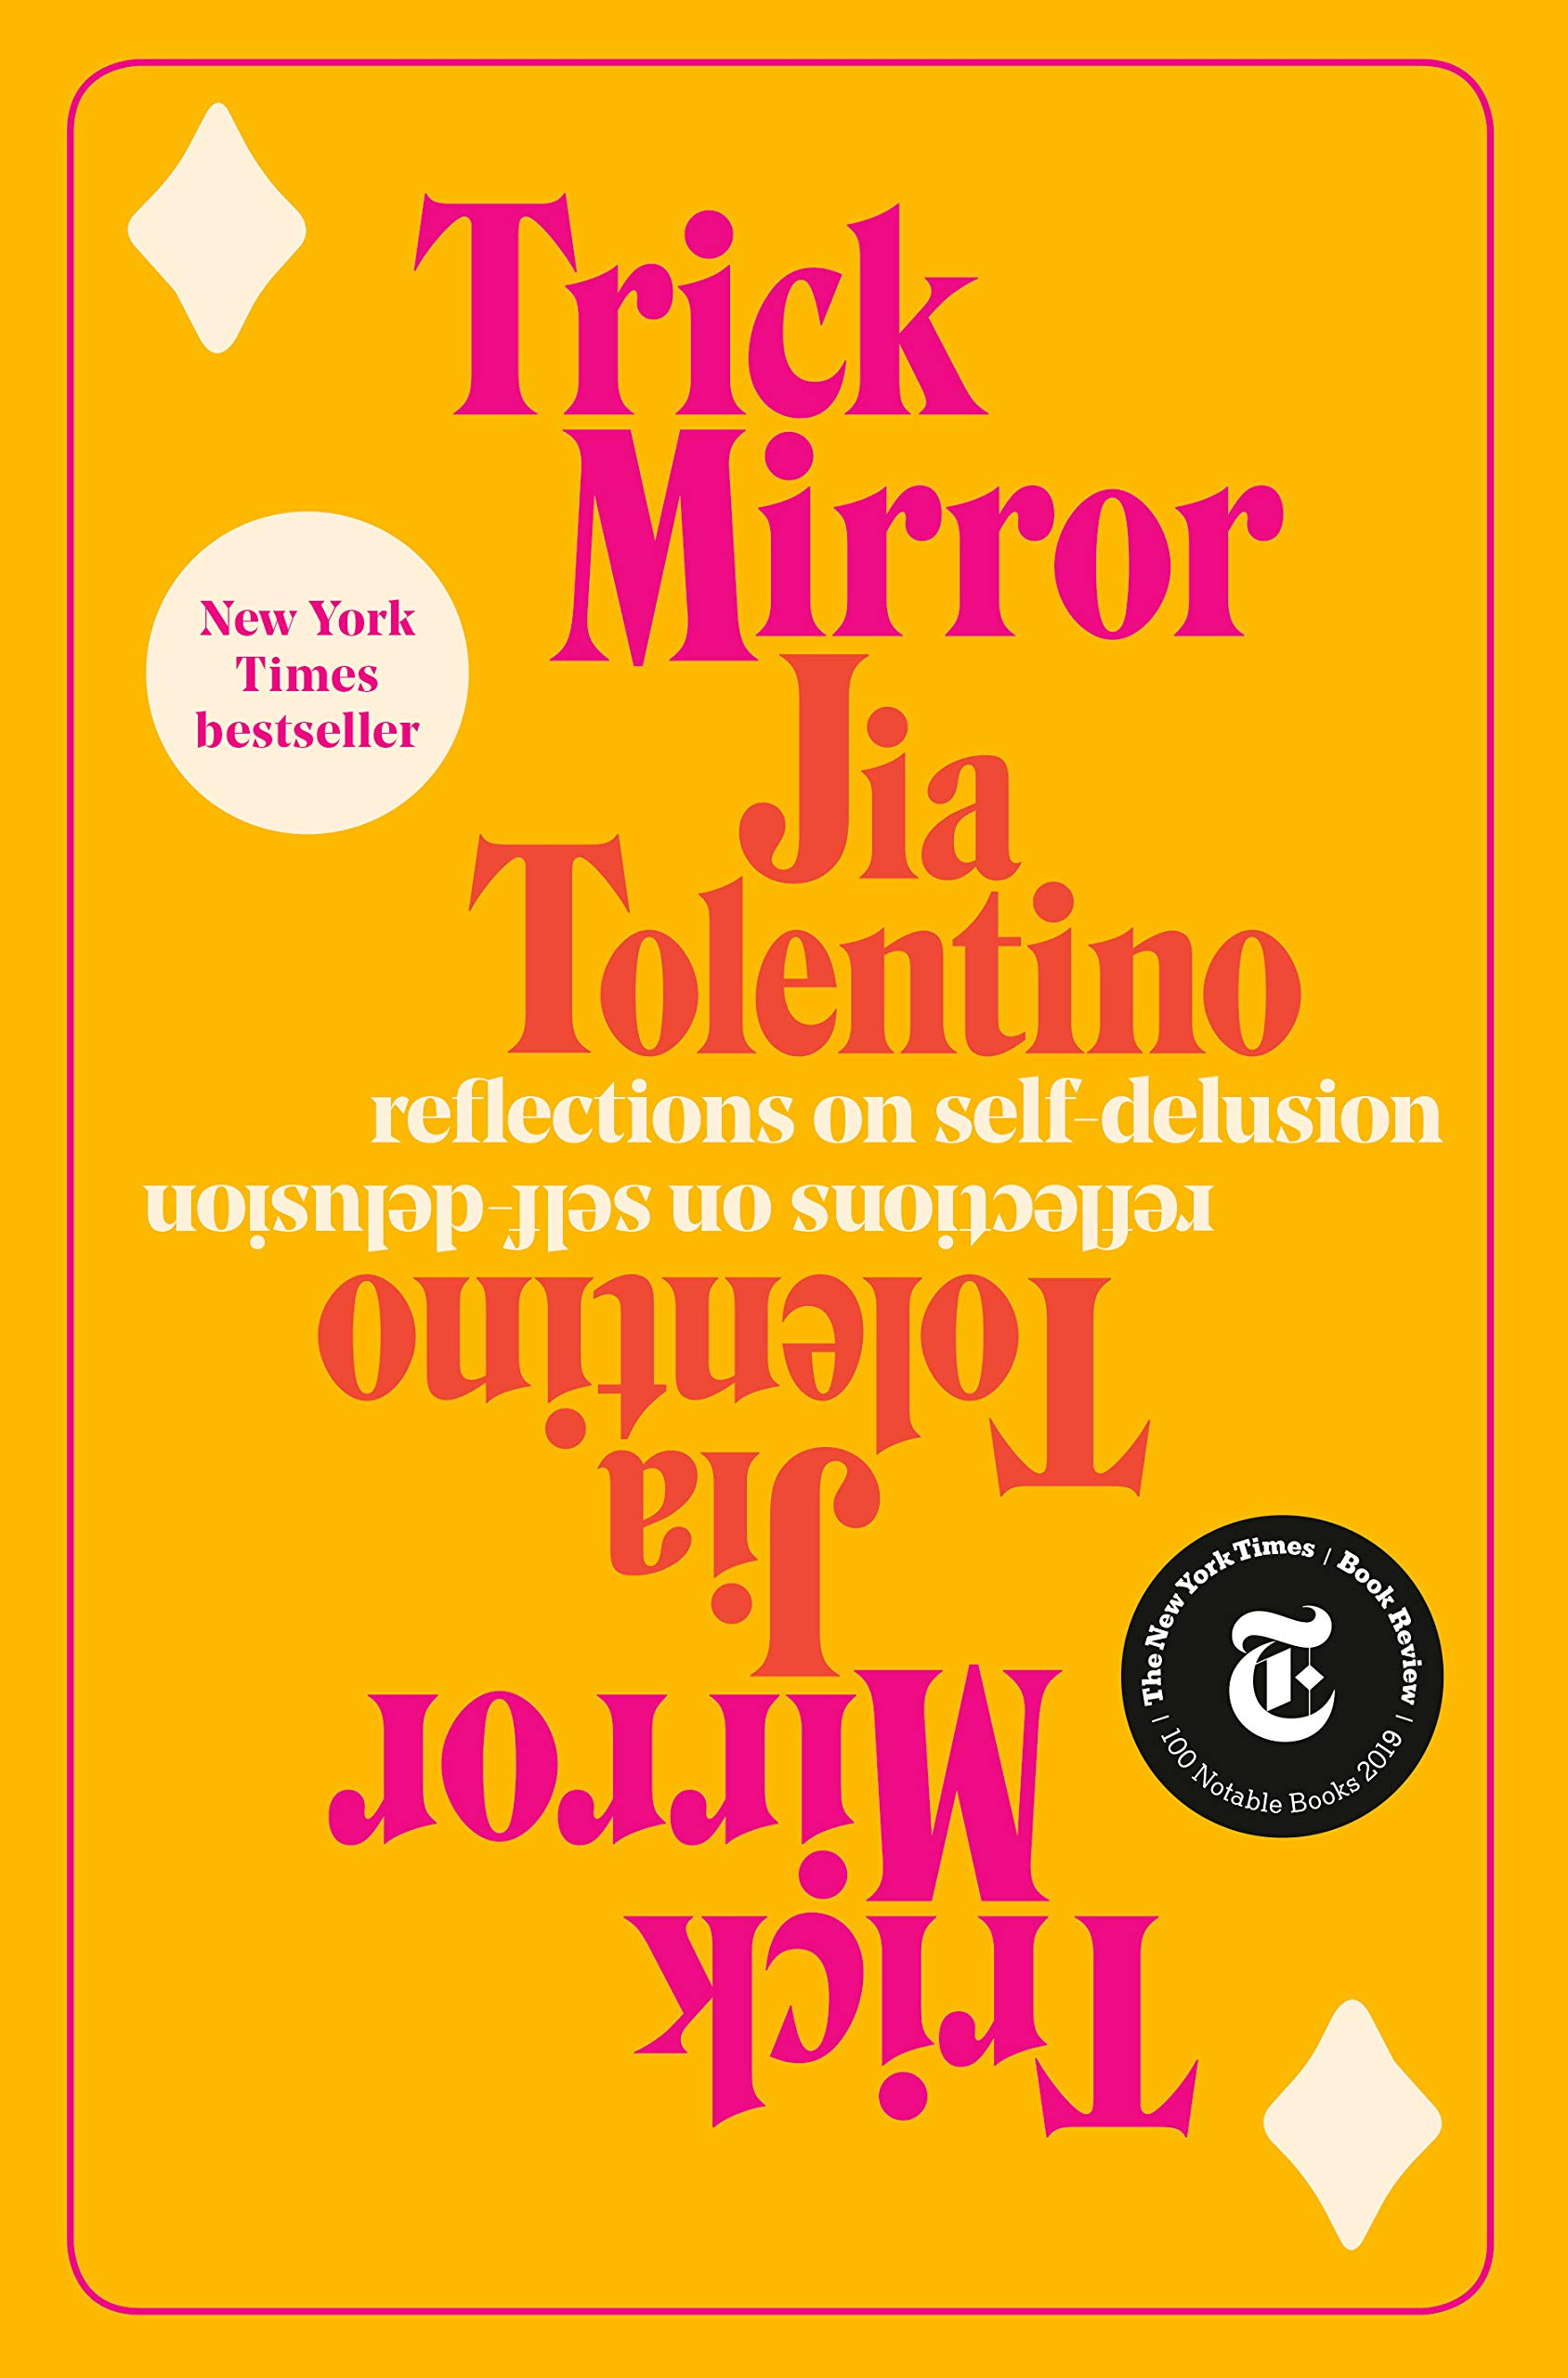 Amazon.com: Trick Mirror: Reflections on Self-Delusion (9780525510543):  Tolentino, Jia: Books